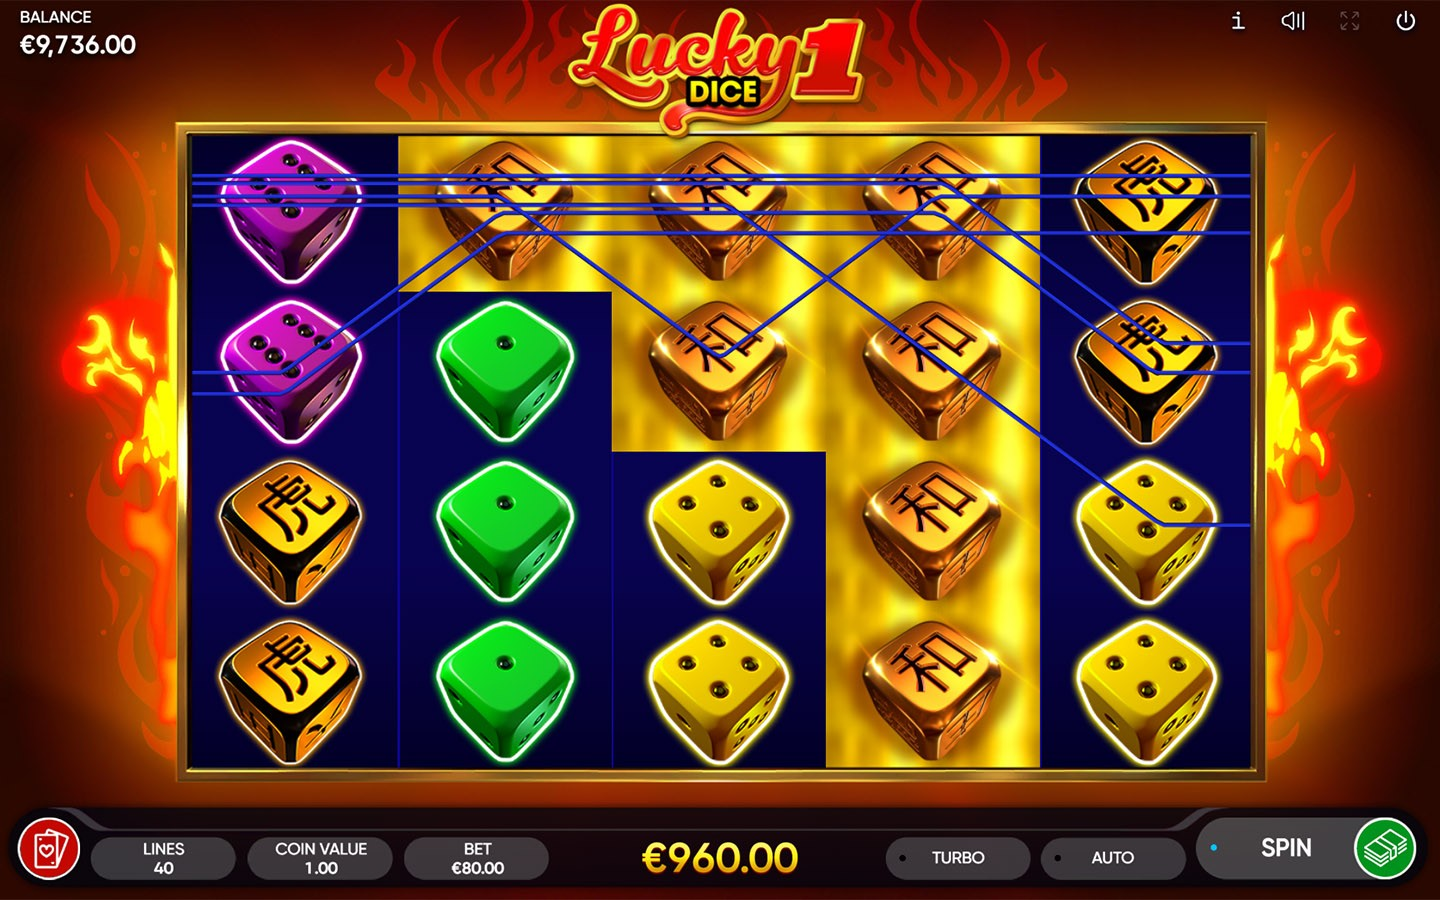 Premium Dice Slots | Enjoy Lucky Dice 1 slot for free!